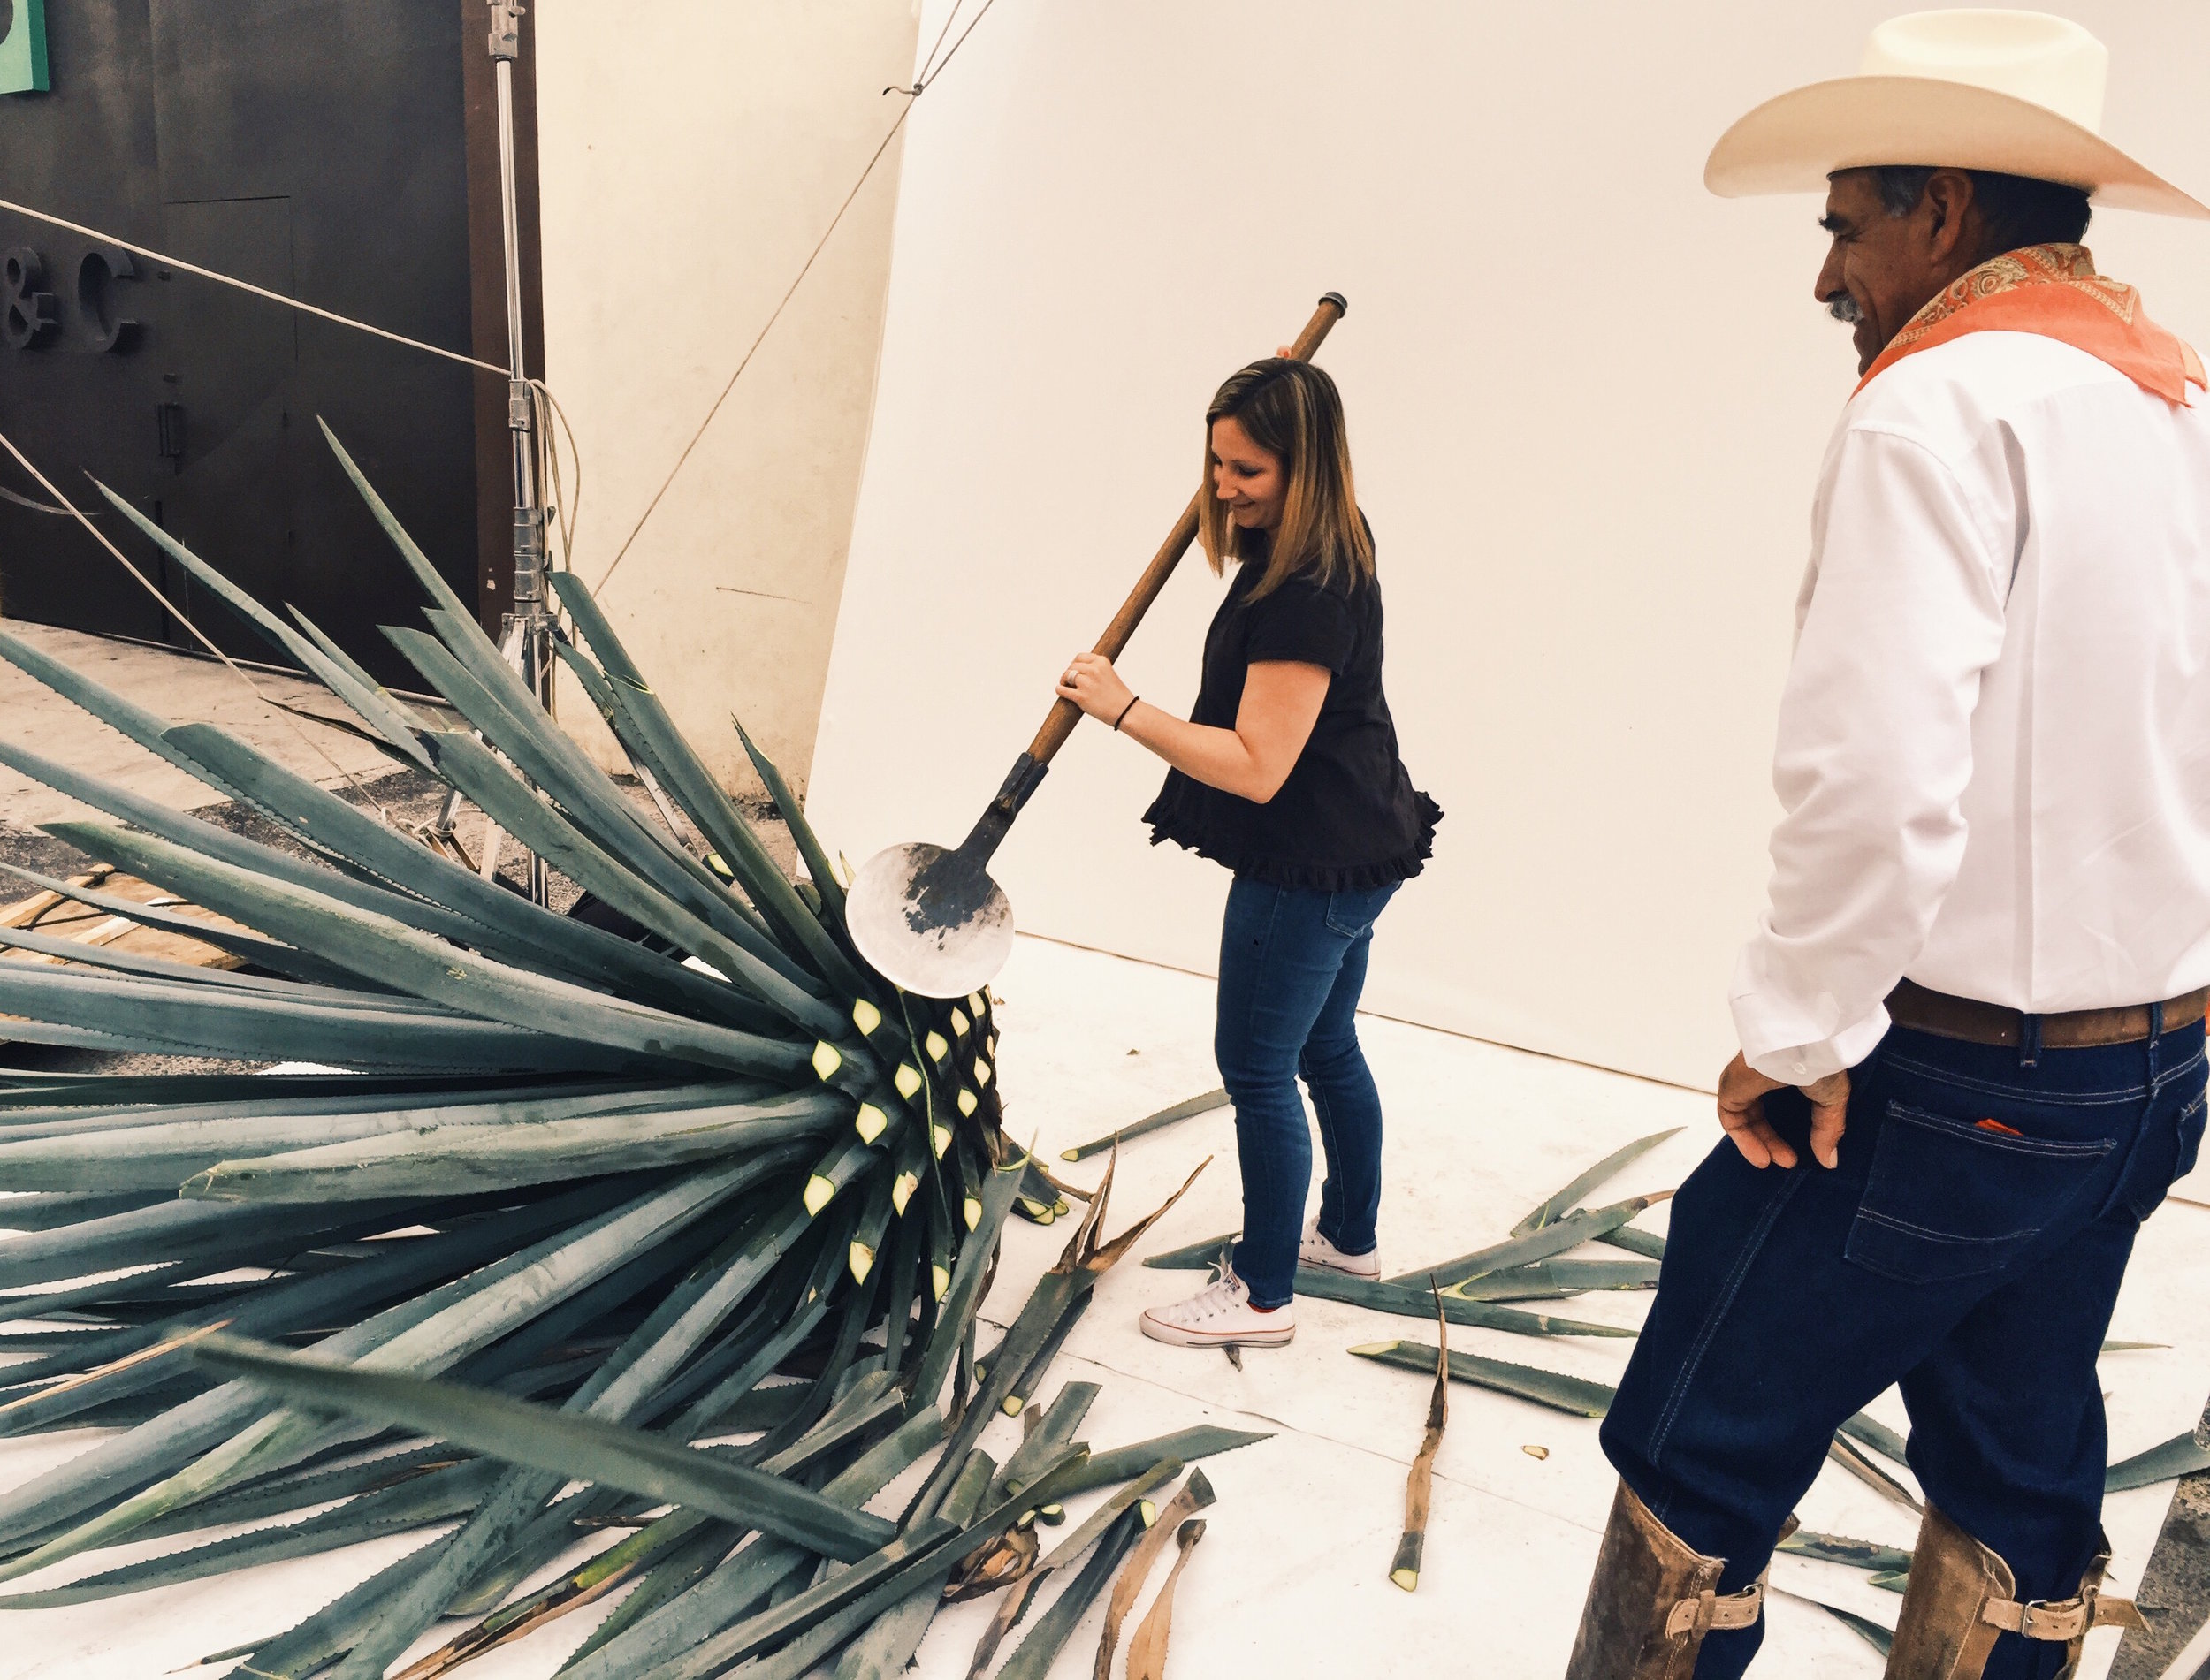 Learning how to cut an agave plant from master jimador Don Manuel from Patron.